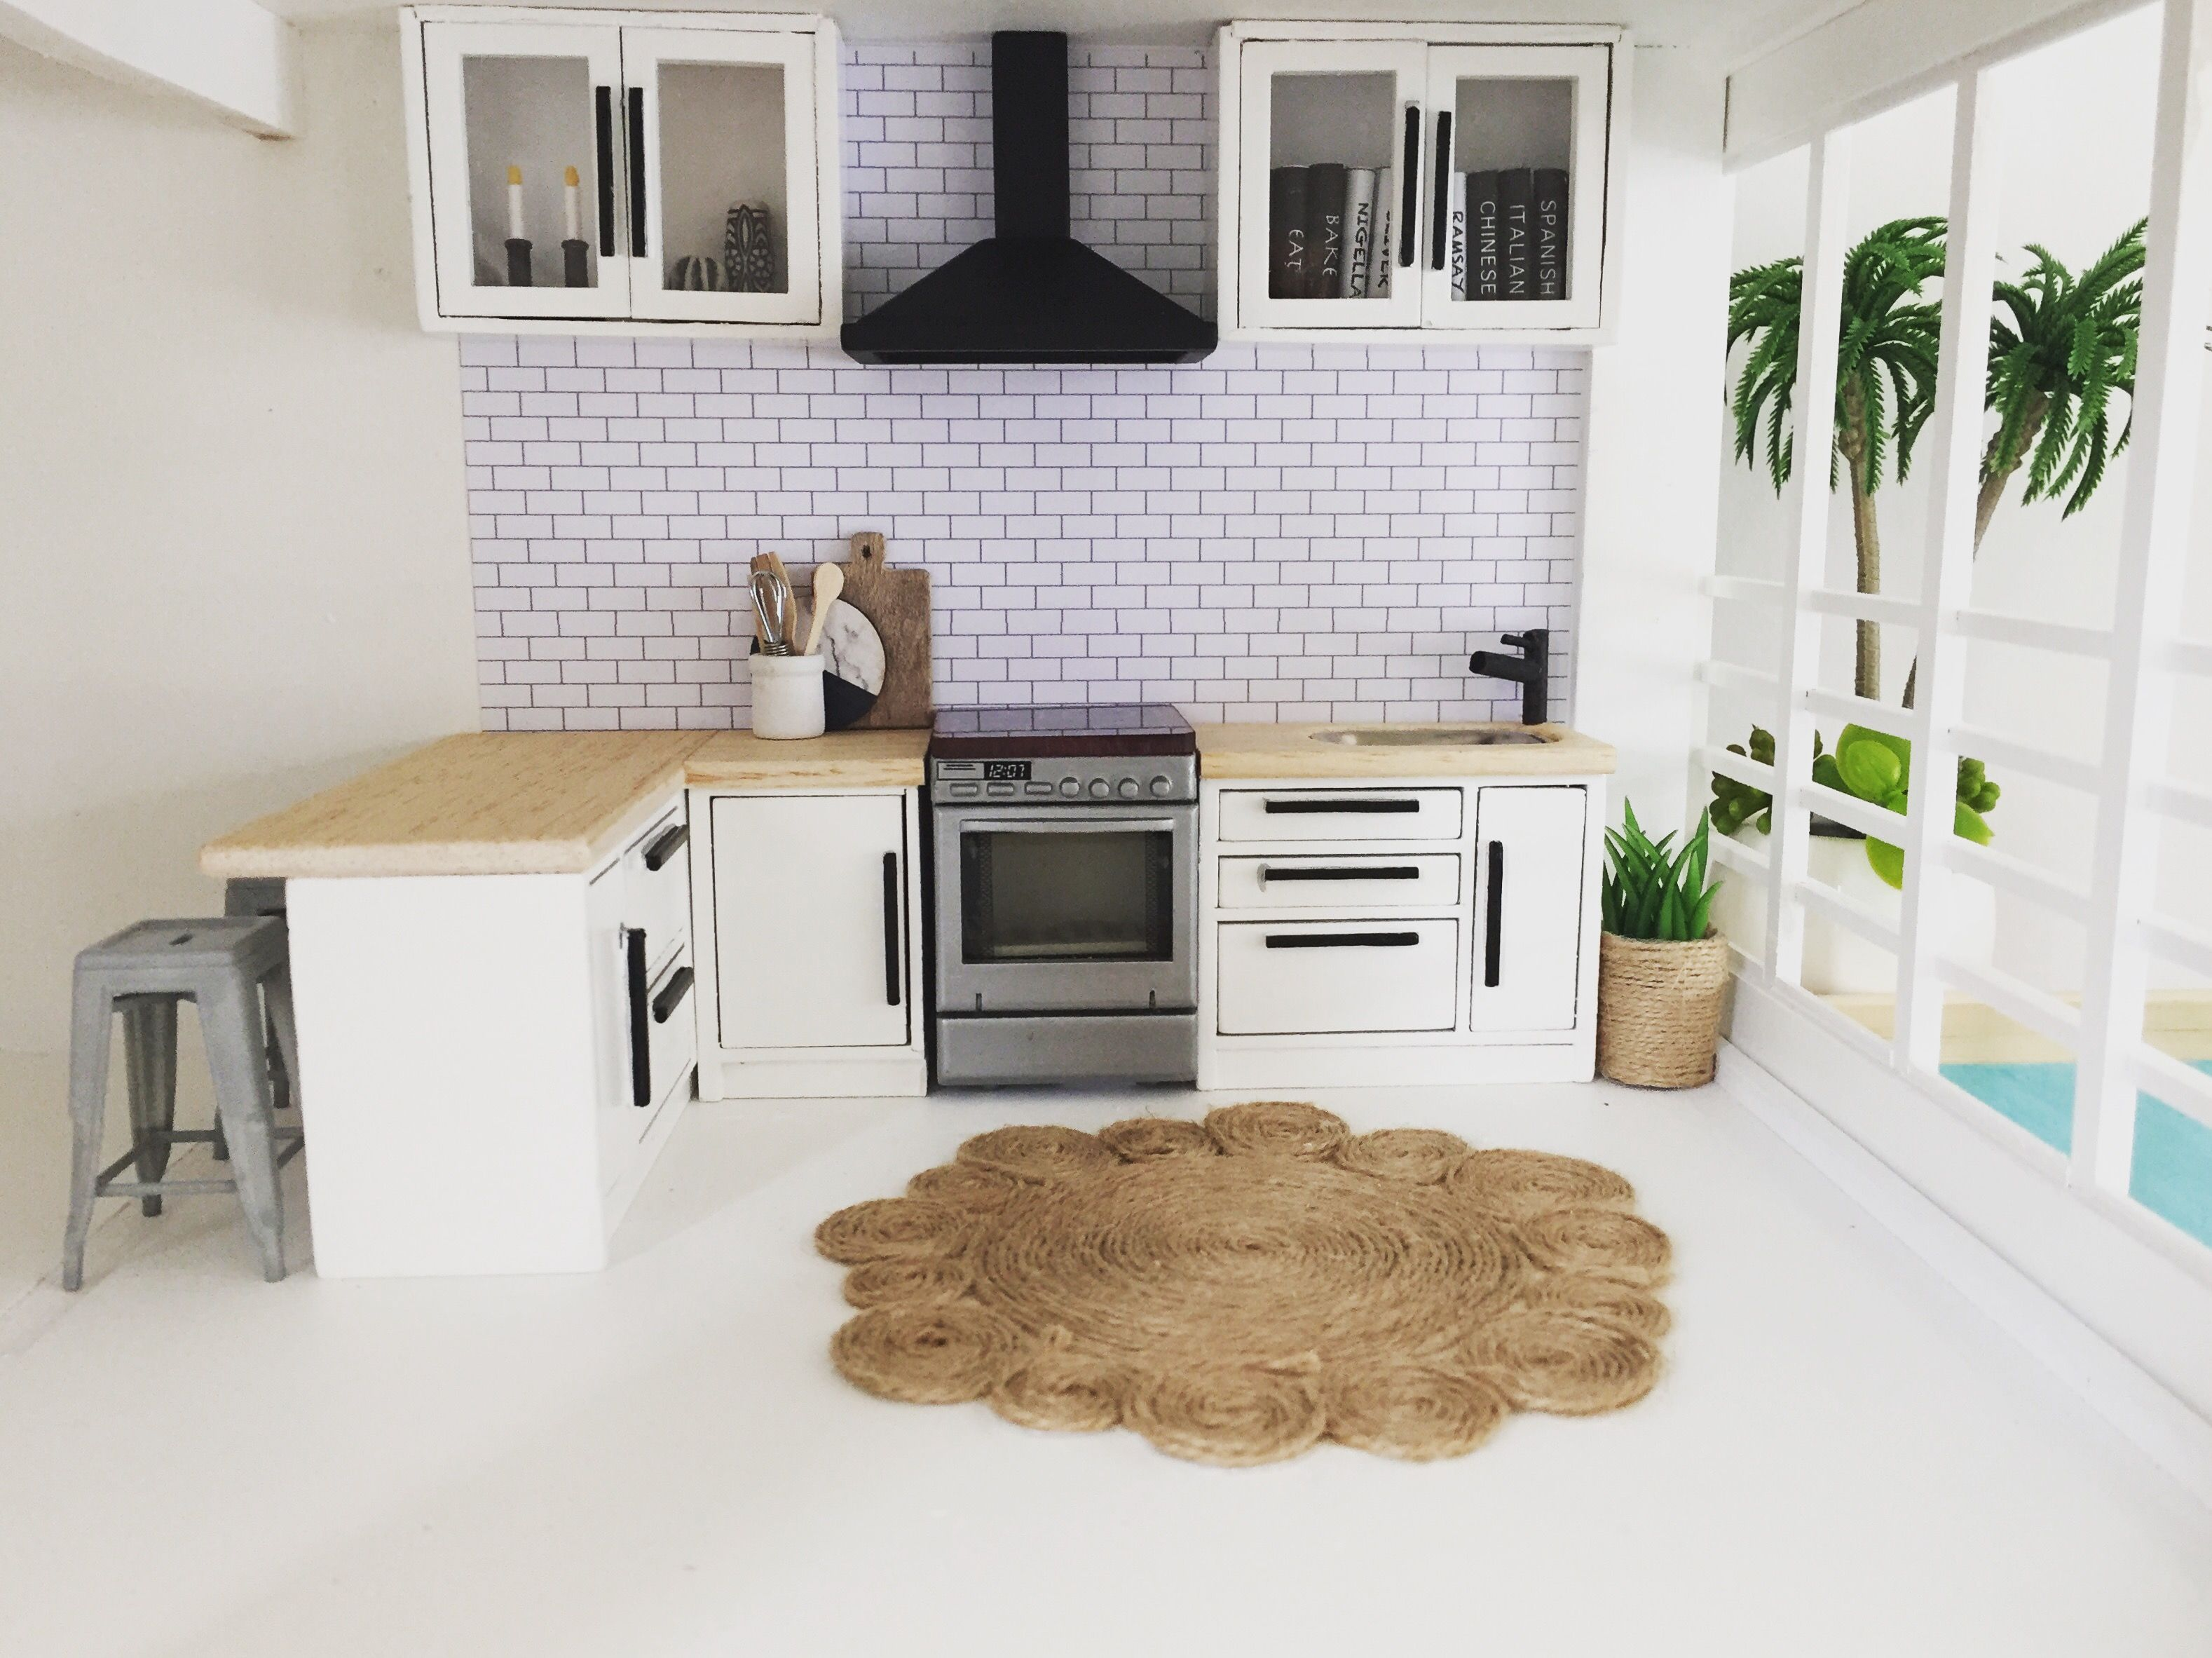 visit - Dollhouse Kitchen